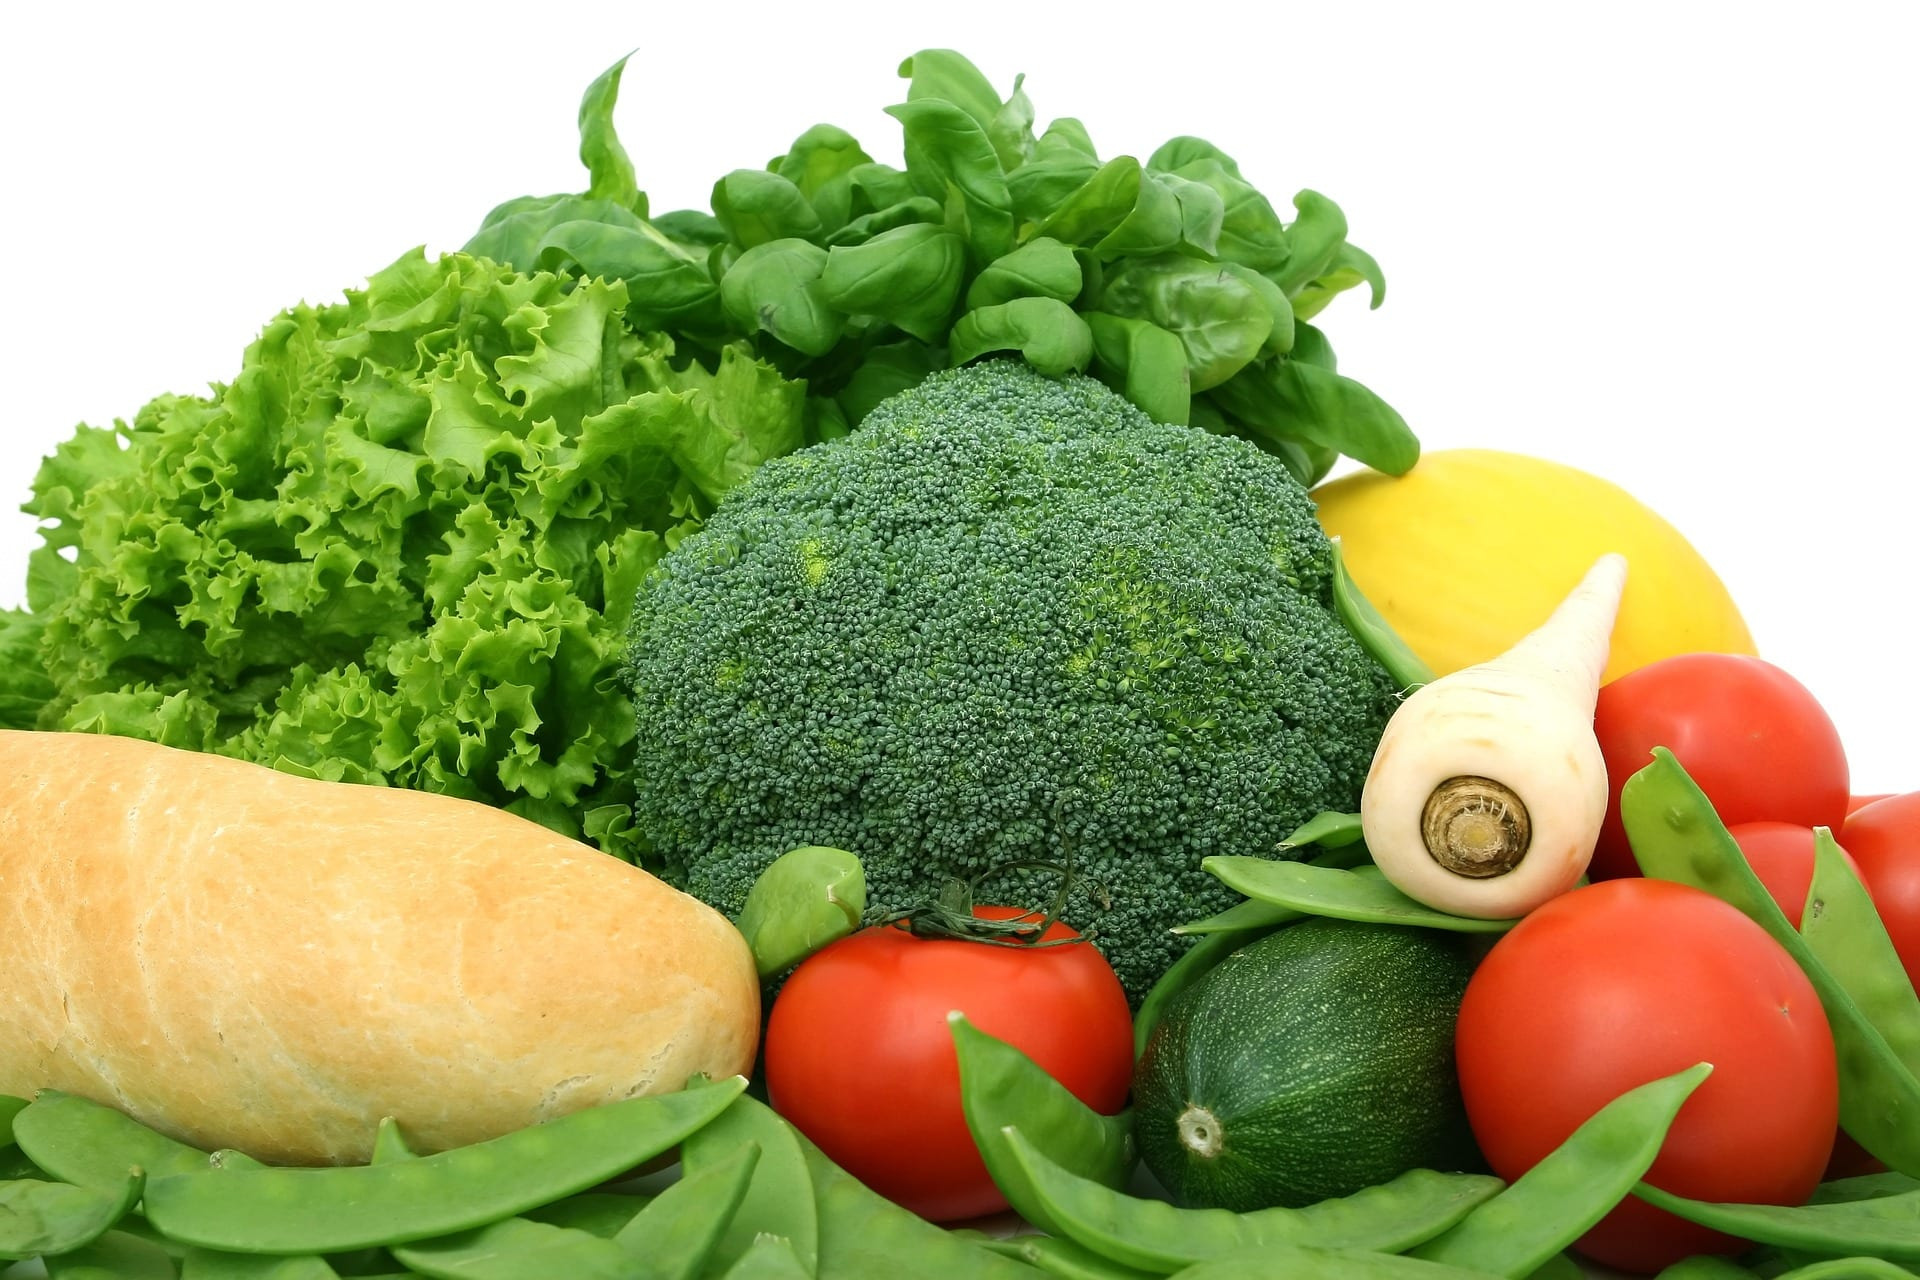 How To Improve Diet And Nutrition: Top Tips